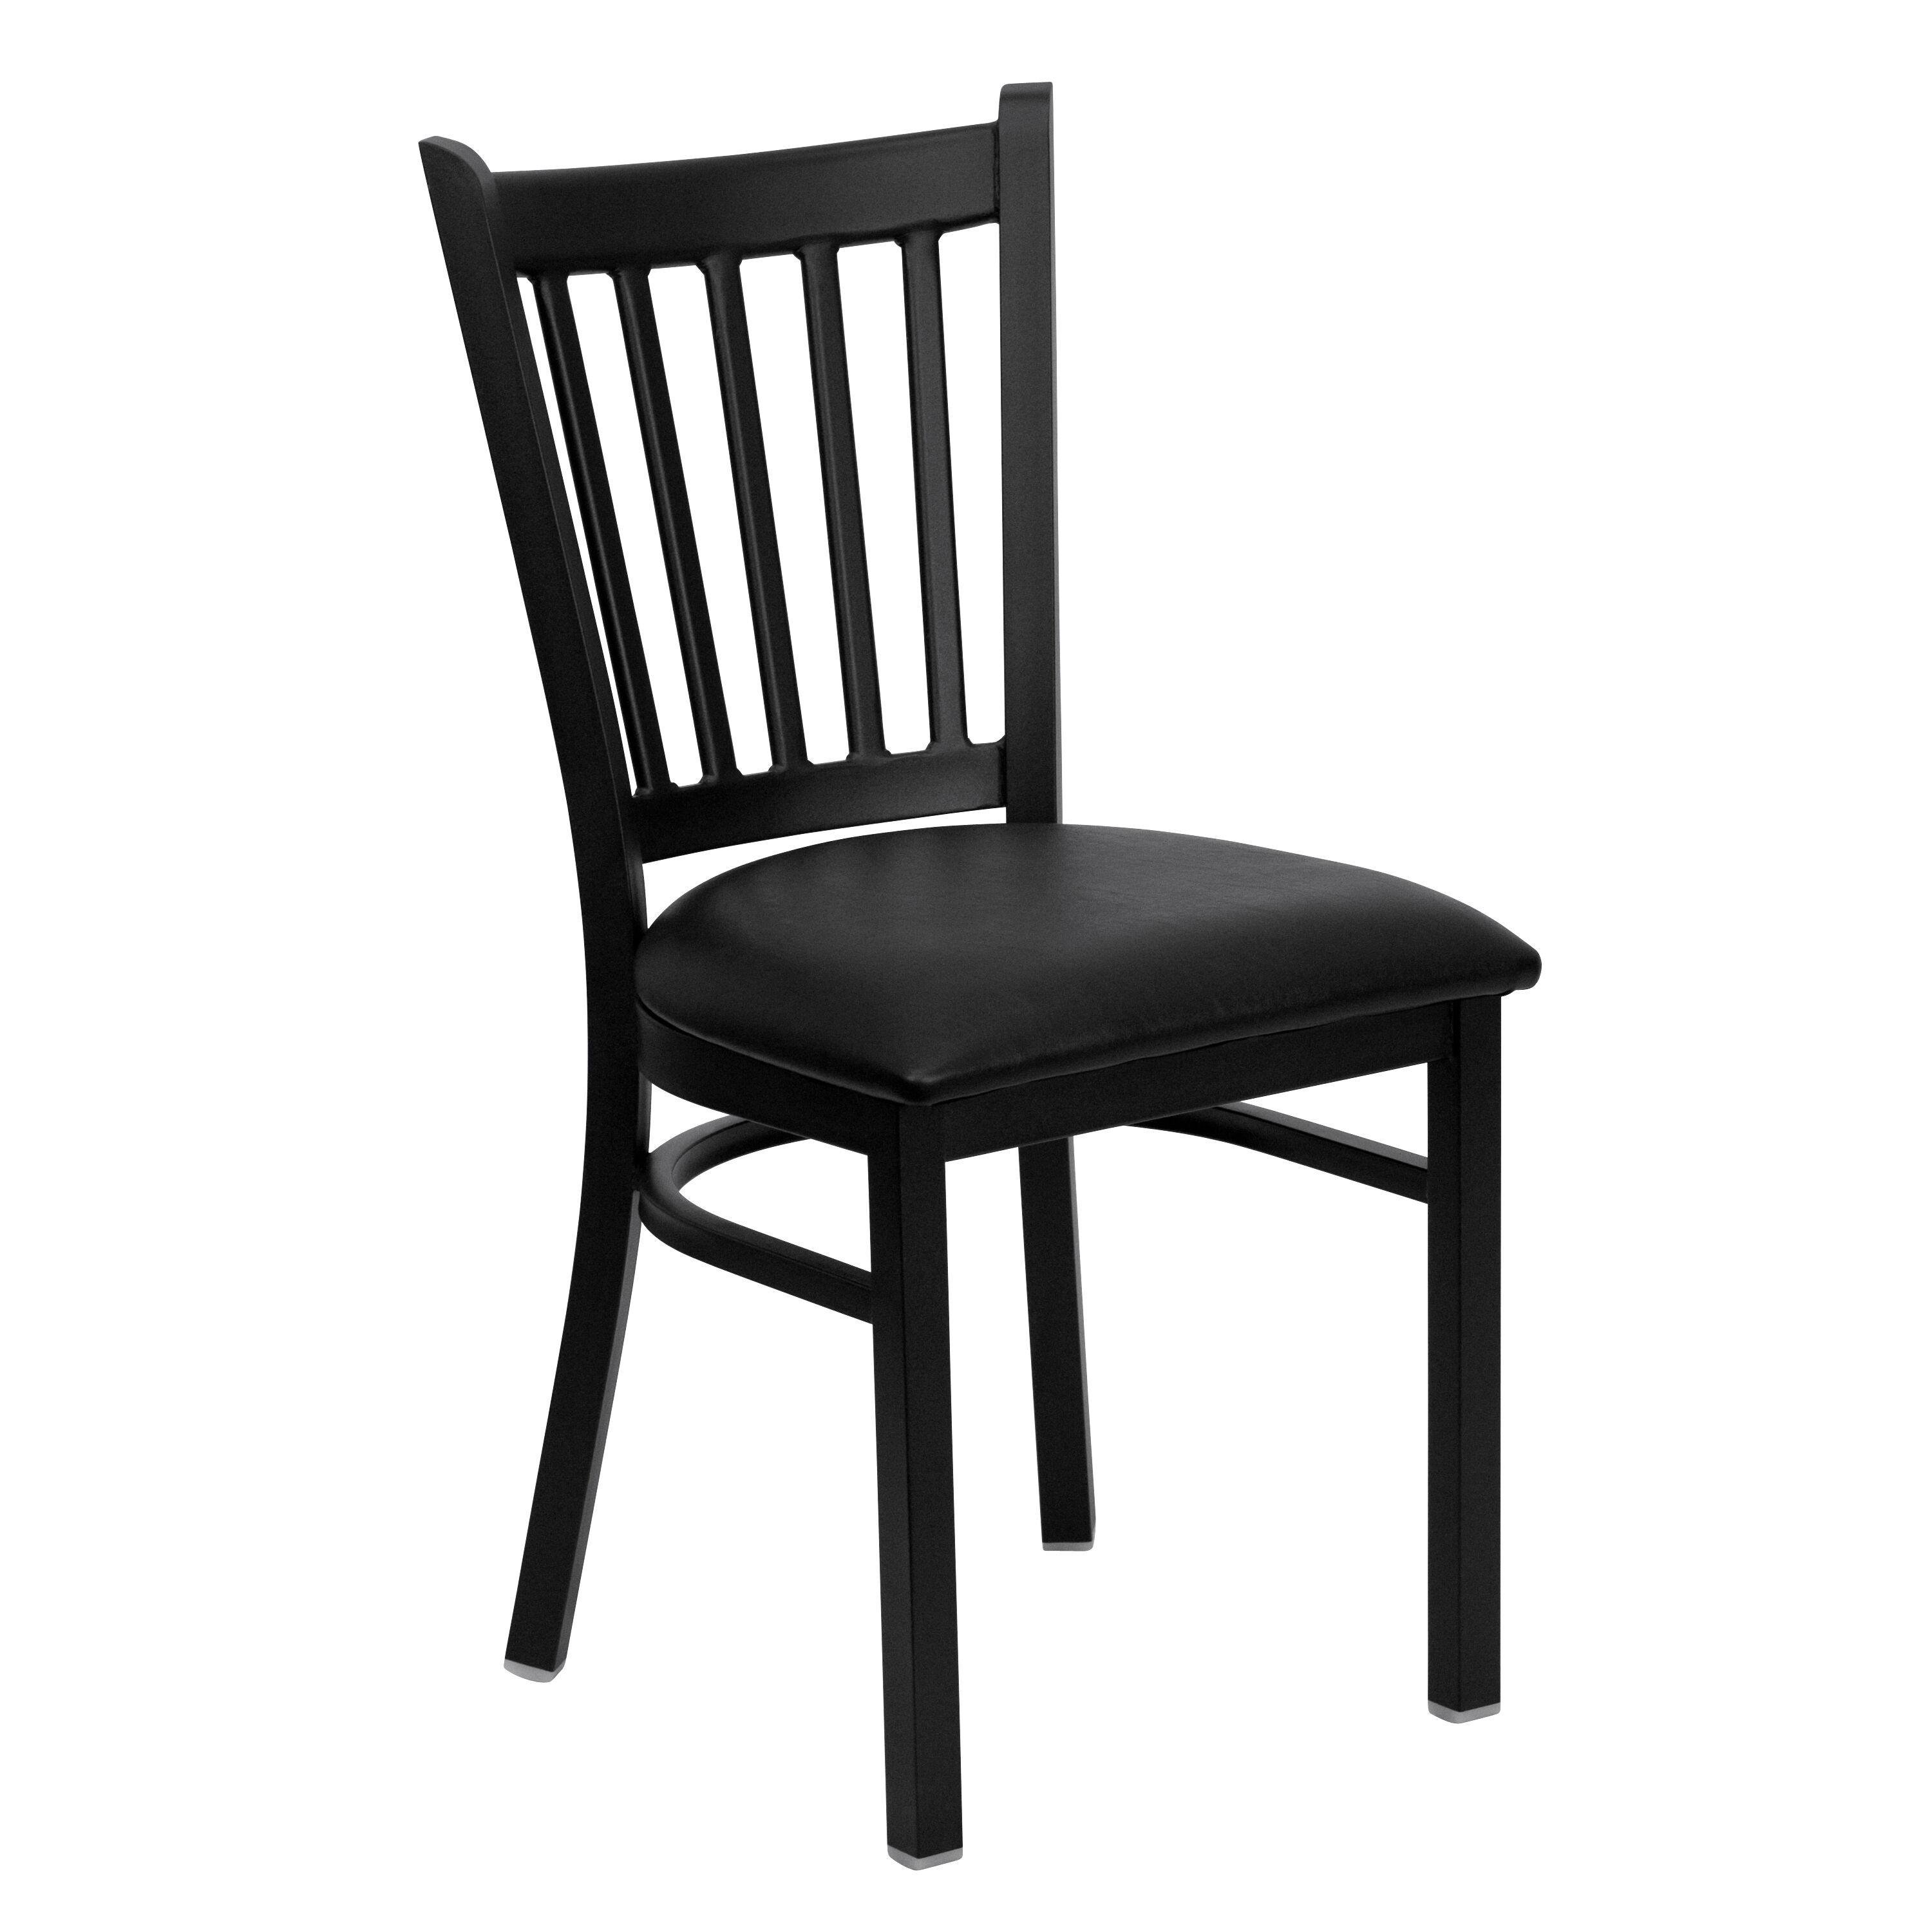 Genial Black Vertical Back Metal Restaurant Chair With Black Vinyl Seat